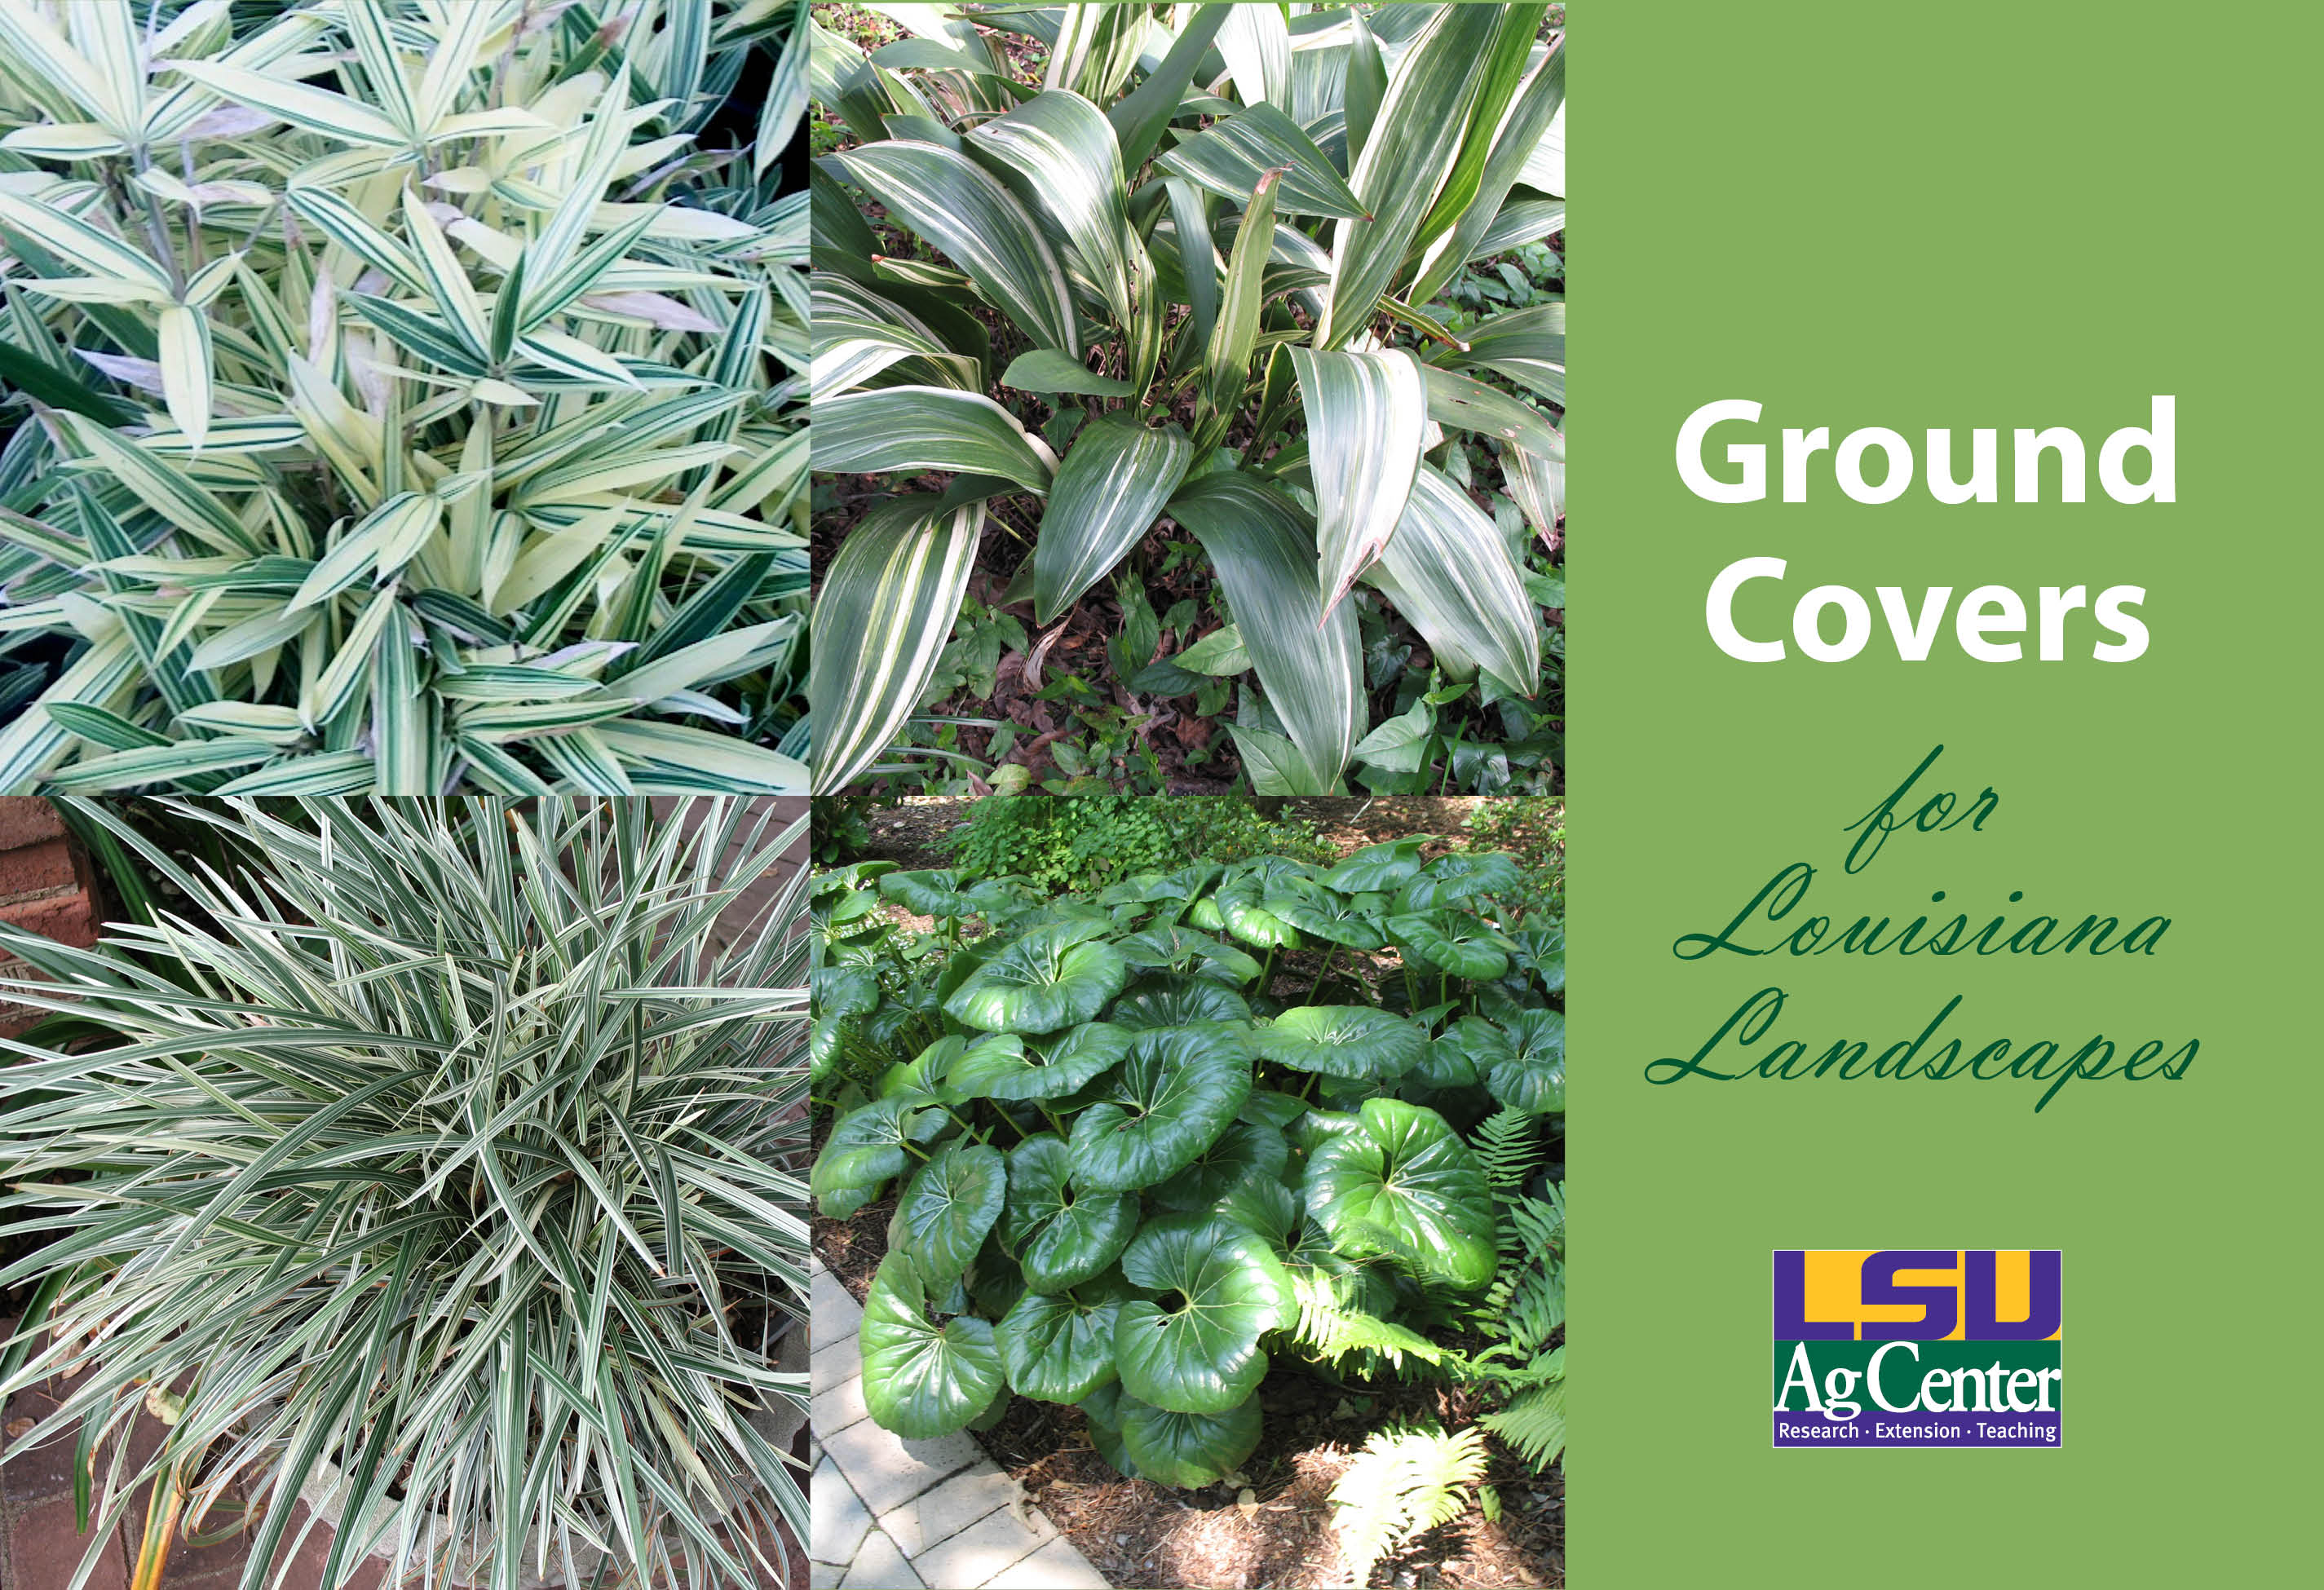 AgCenter has two new gardening publications for sale